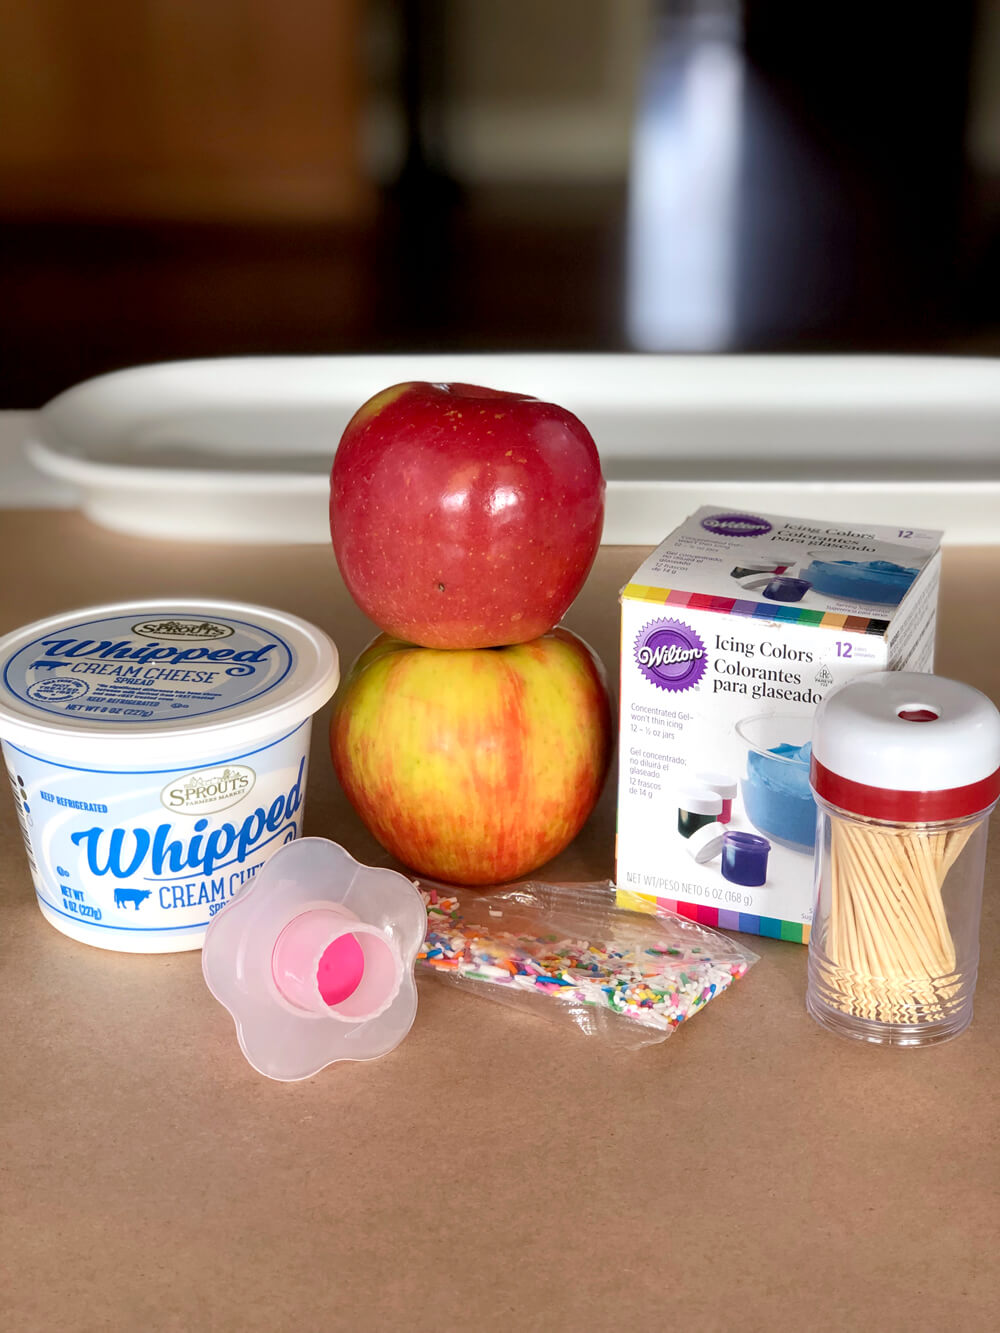 Simple ingredients for apple donuts a healthy foodie party treat